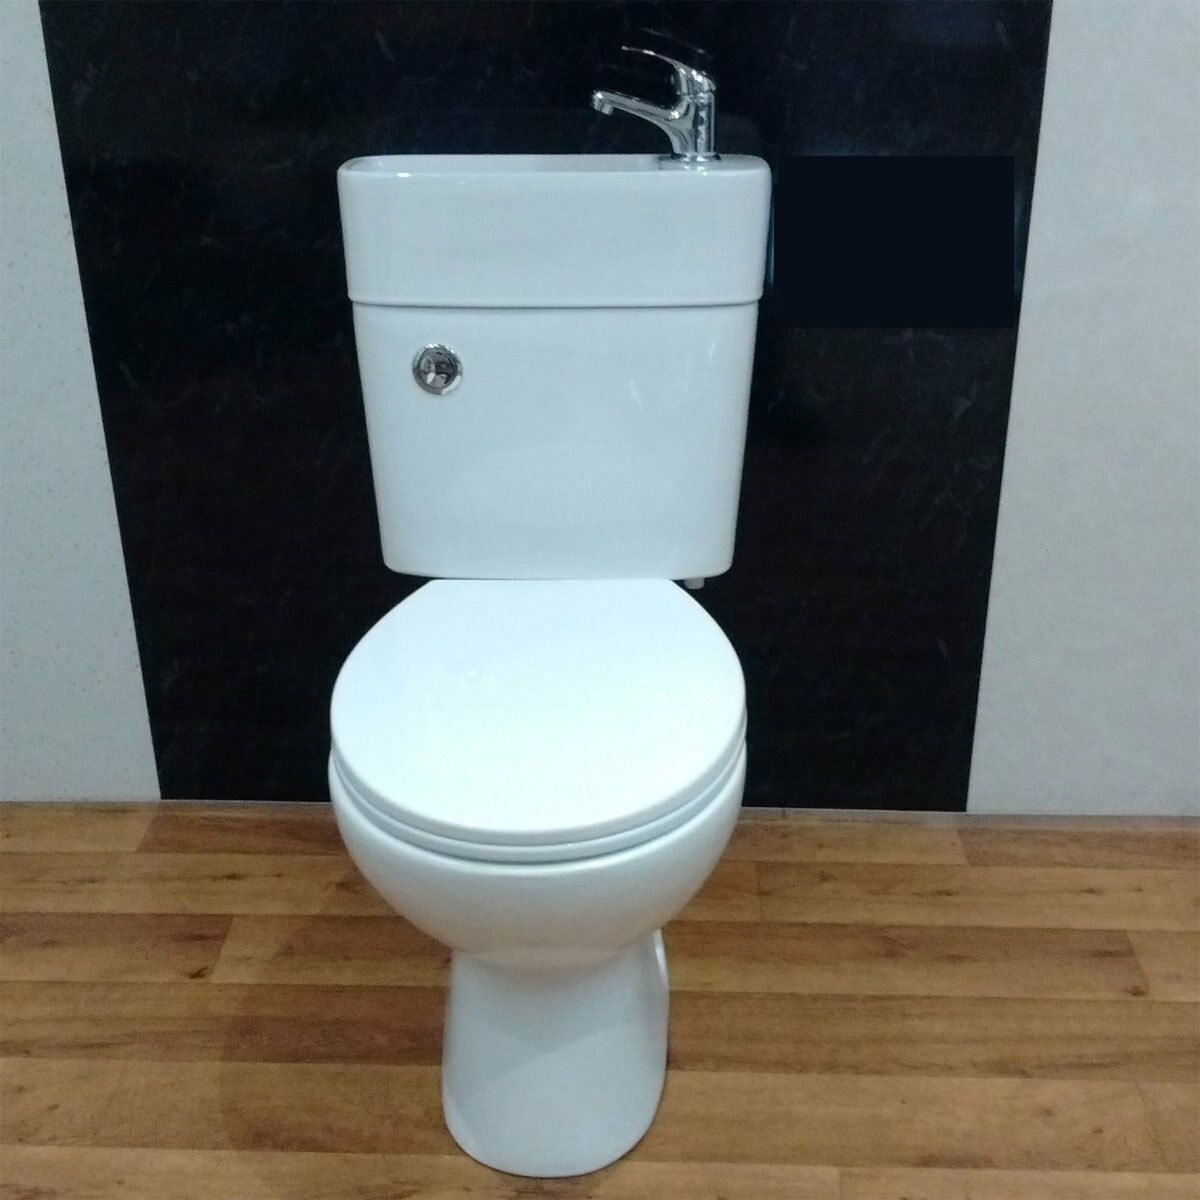 Toilet Bidet Combination Toilet